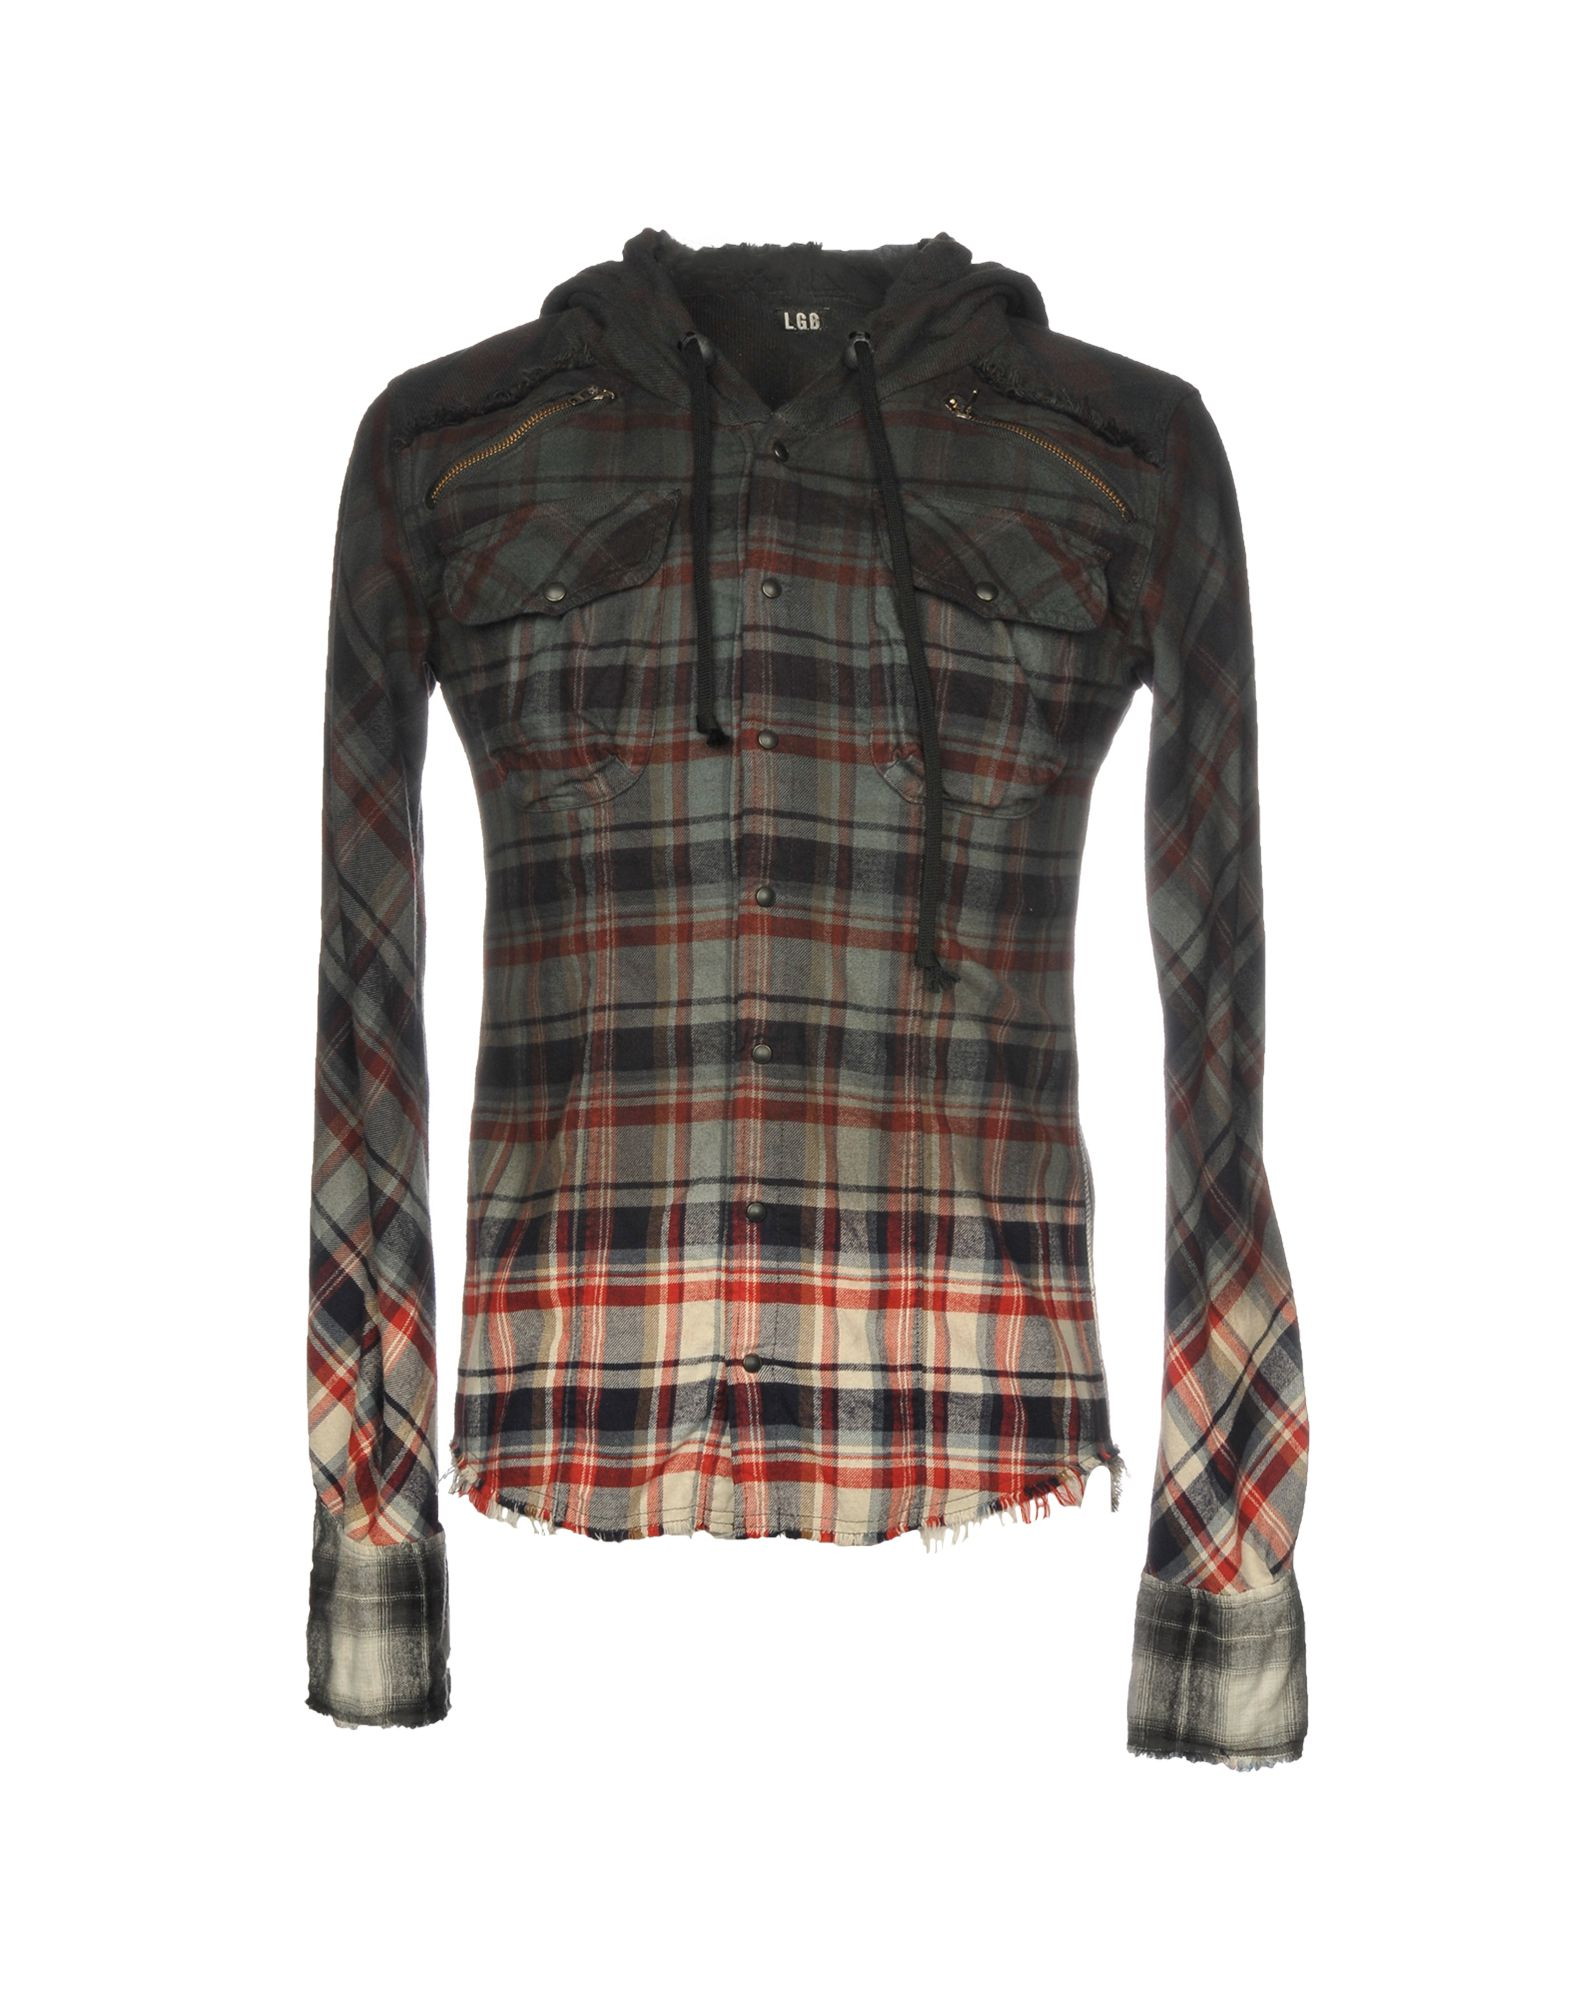 L.G.B. Checked Shirt in Lead